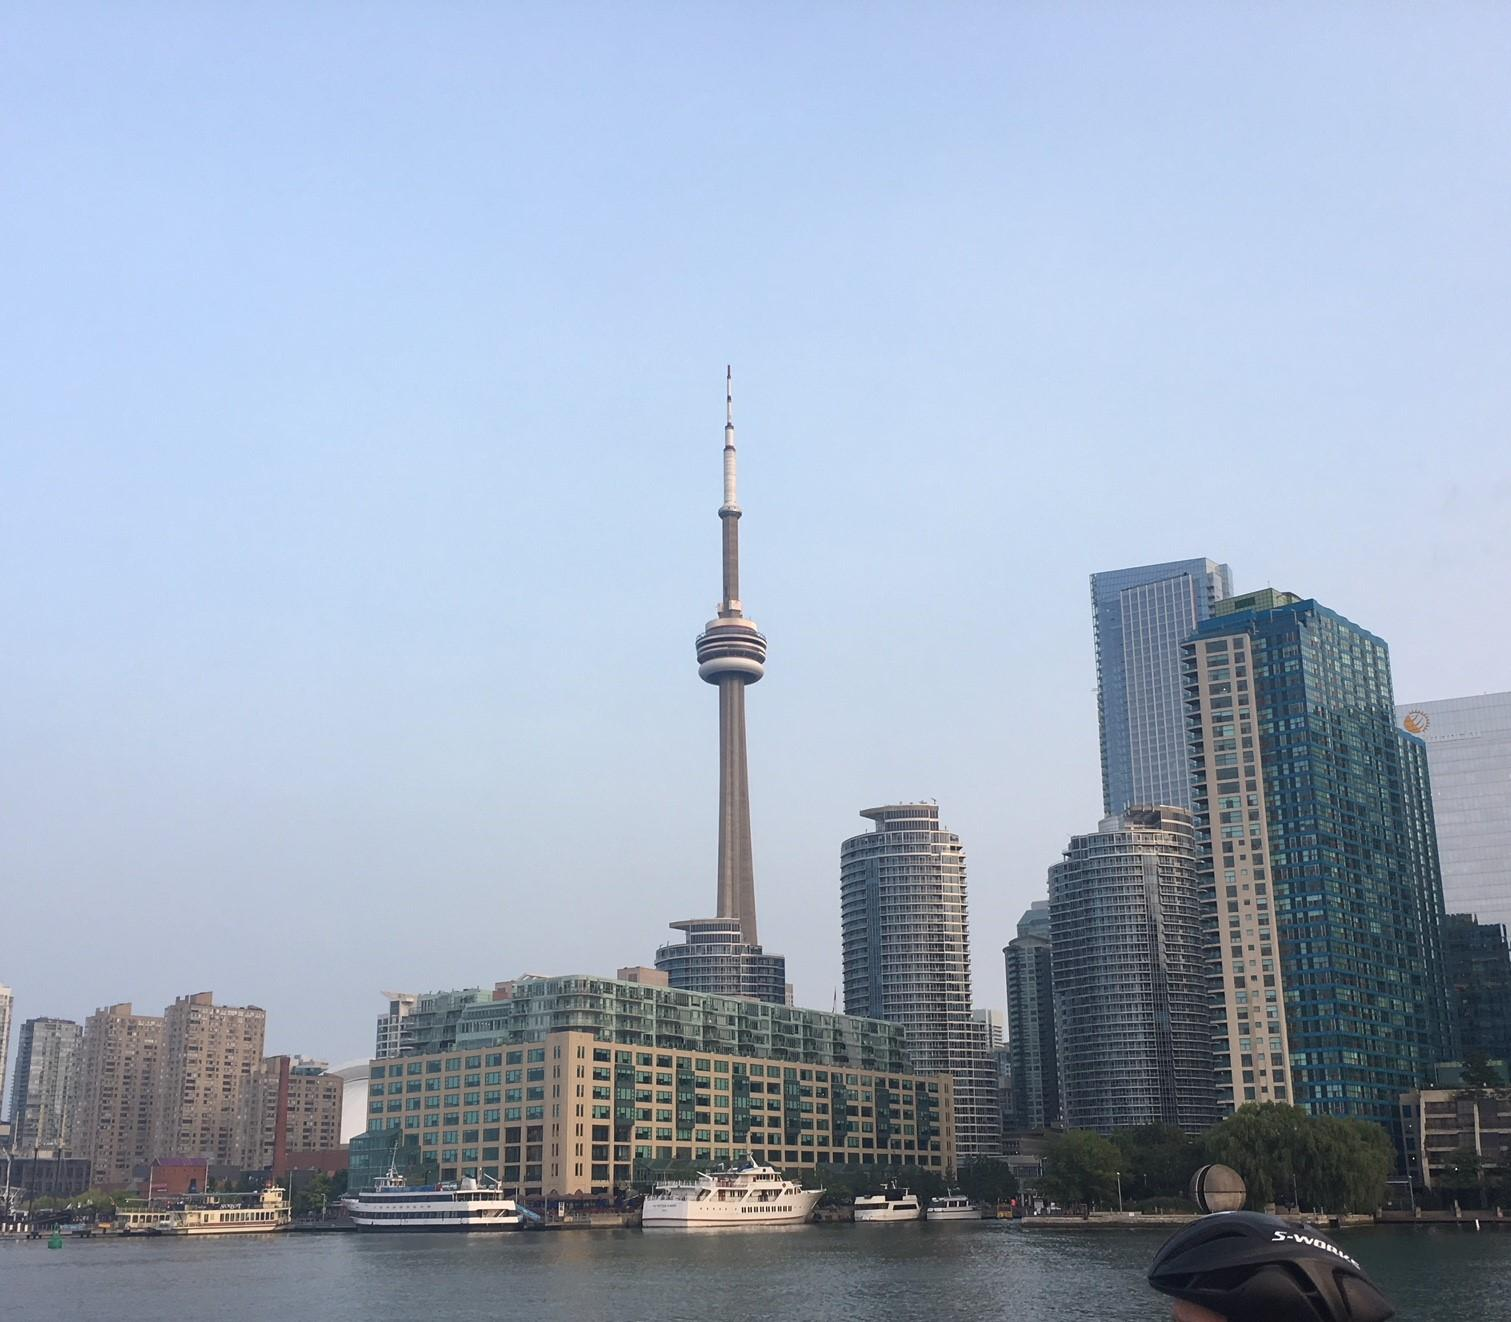 The Toronto Island Triathlon